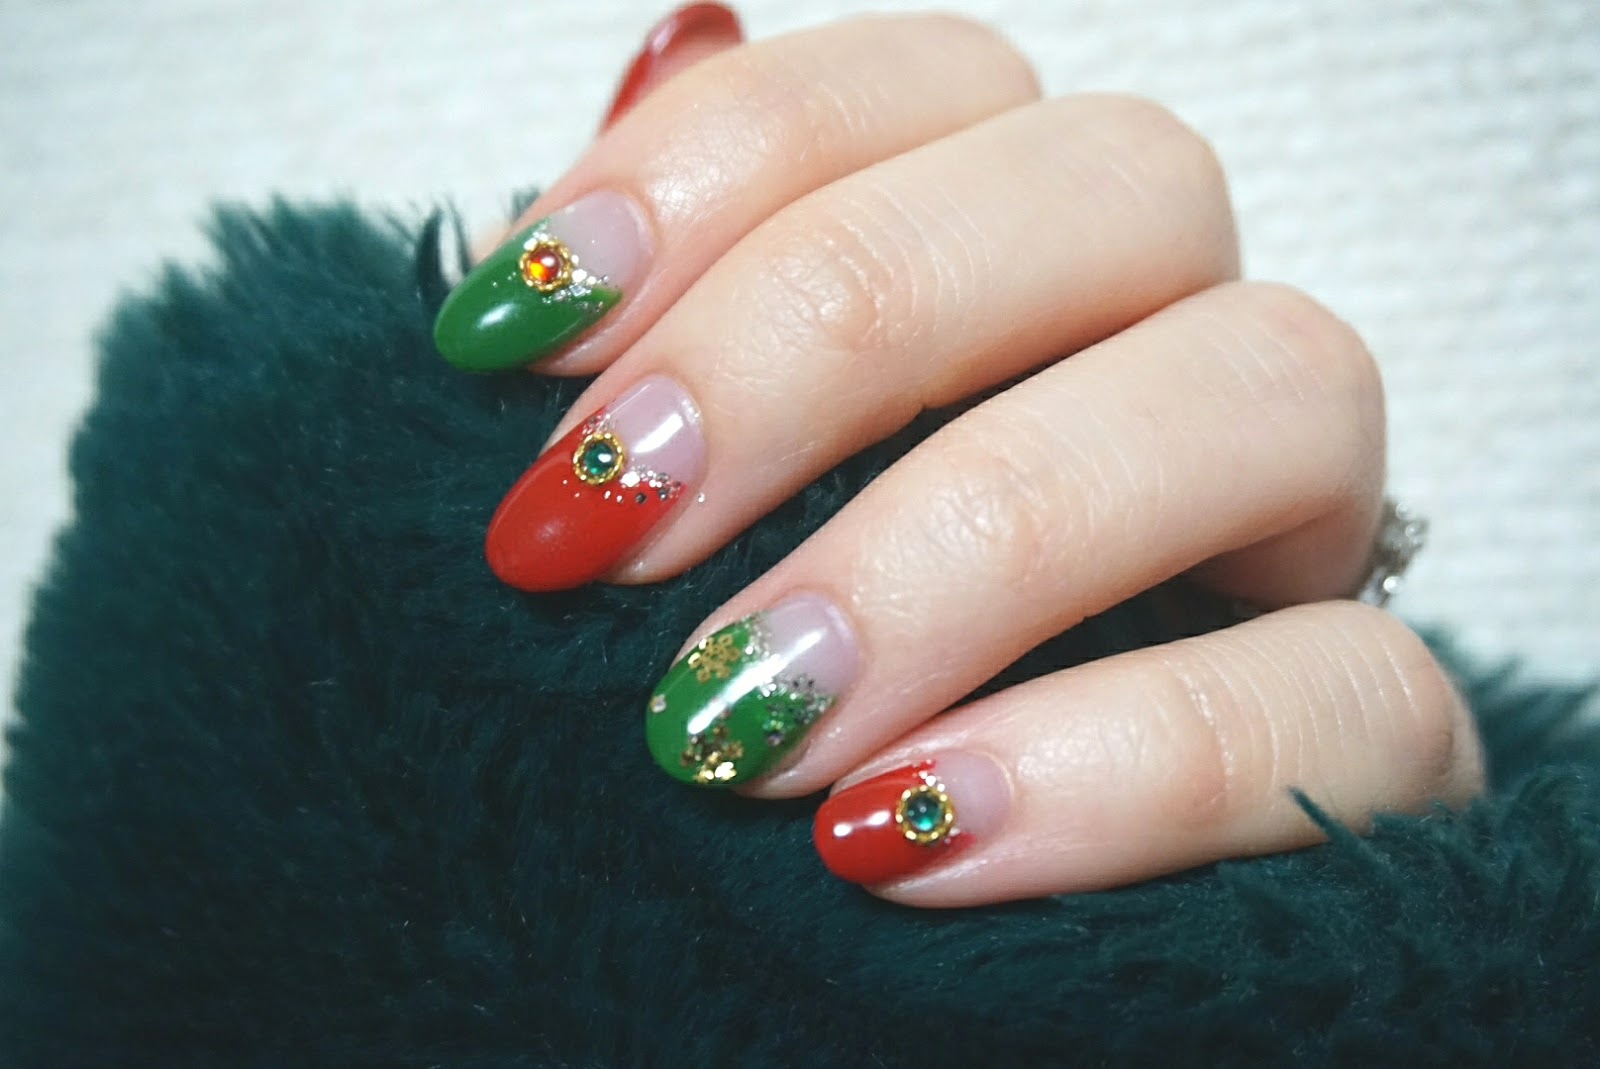 Japanese Nail Salons | Sincerely, Alice